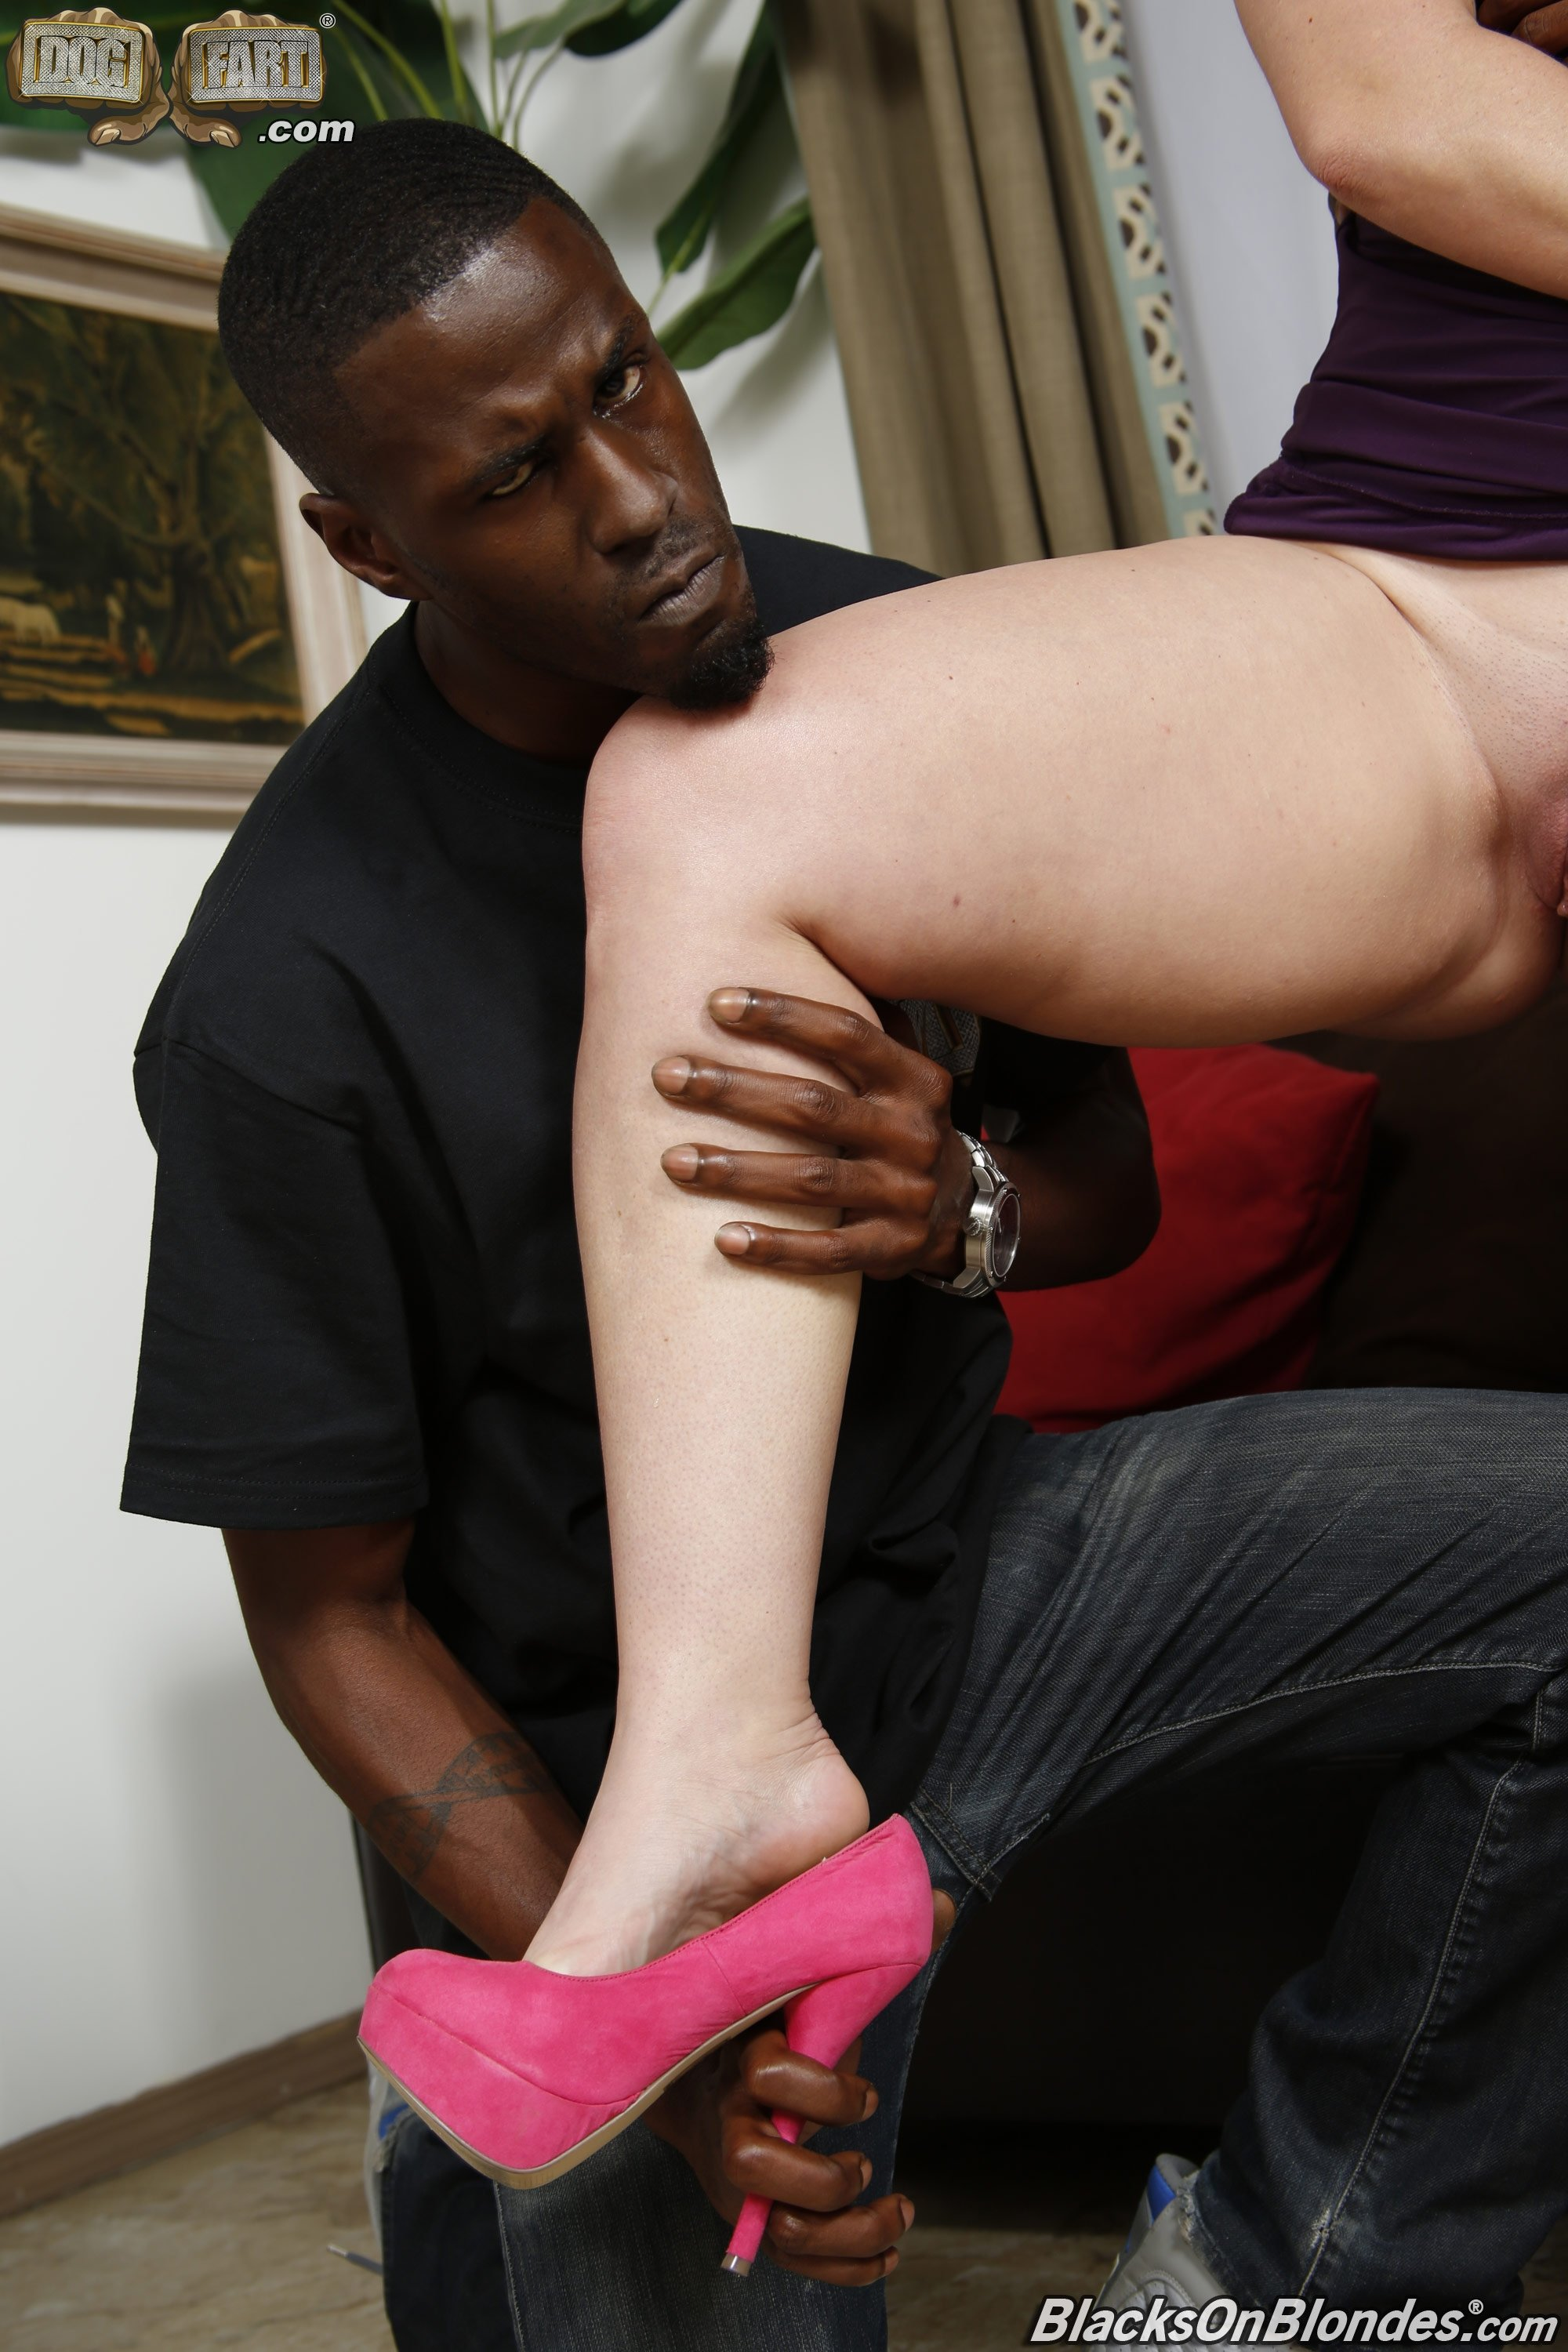 Wife stockings interracial #1